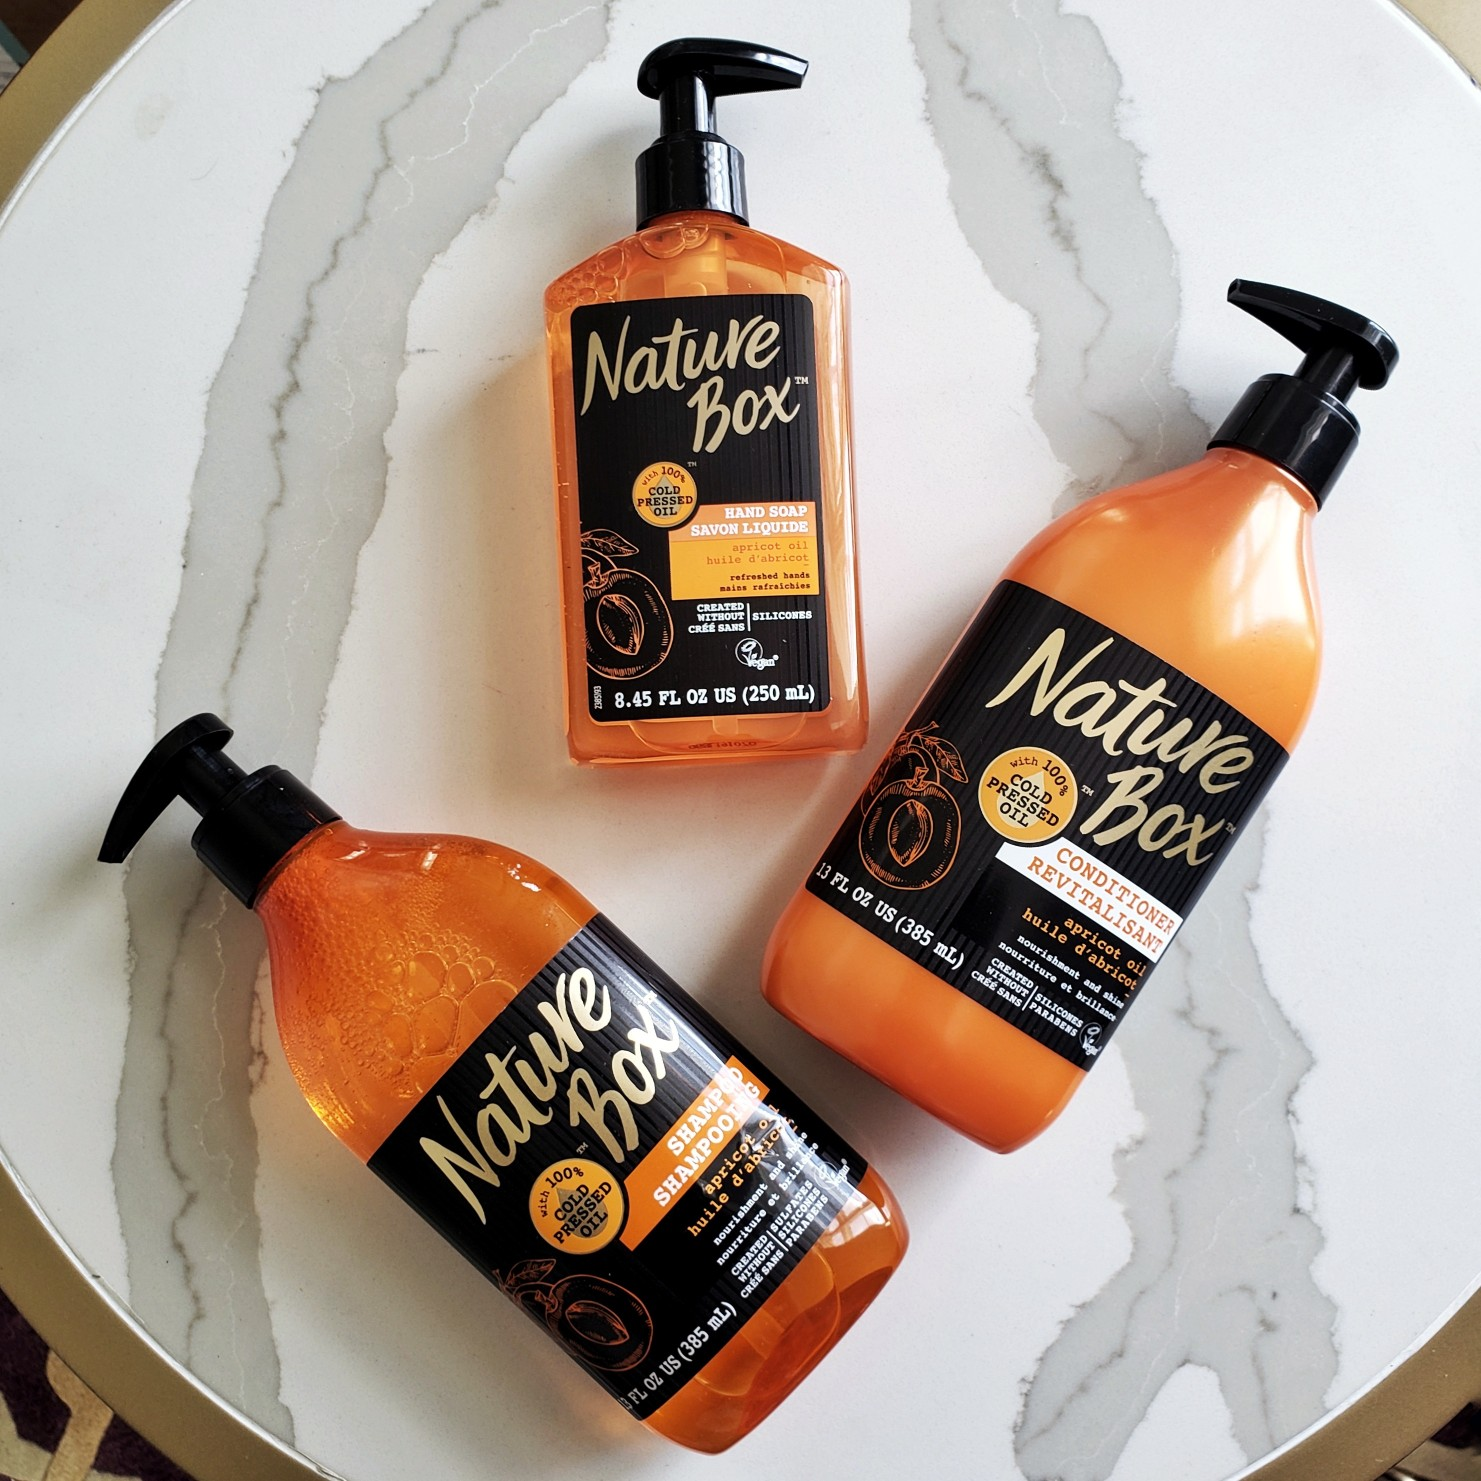 Nature Box Beauty™ Apricot Oil Review by Beauty Blogger Afroza Khan